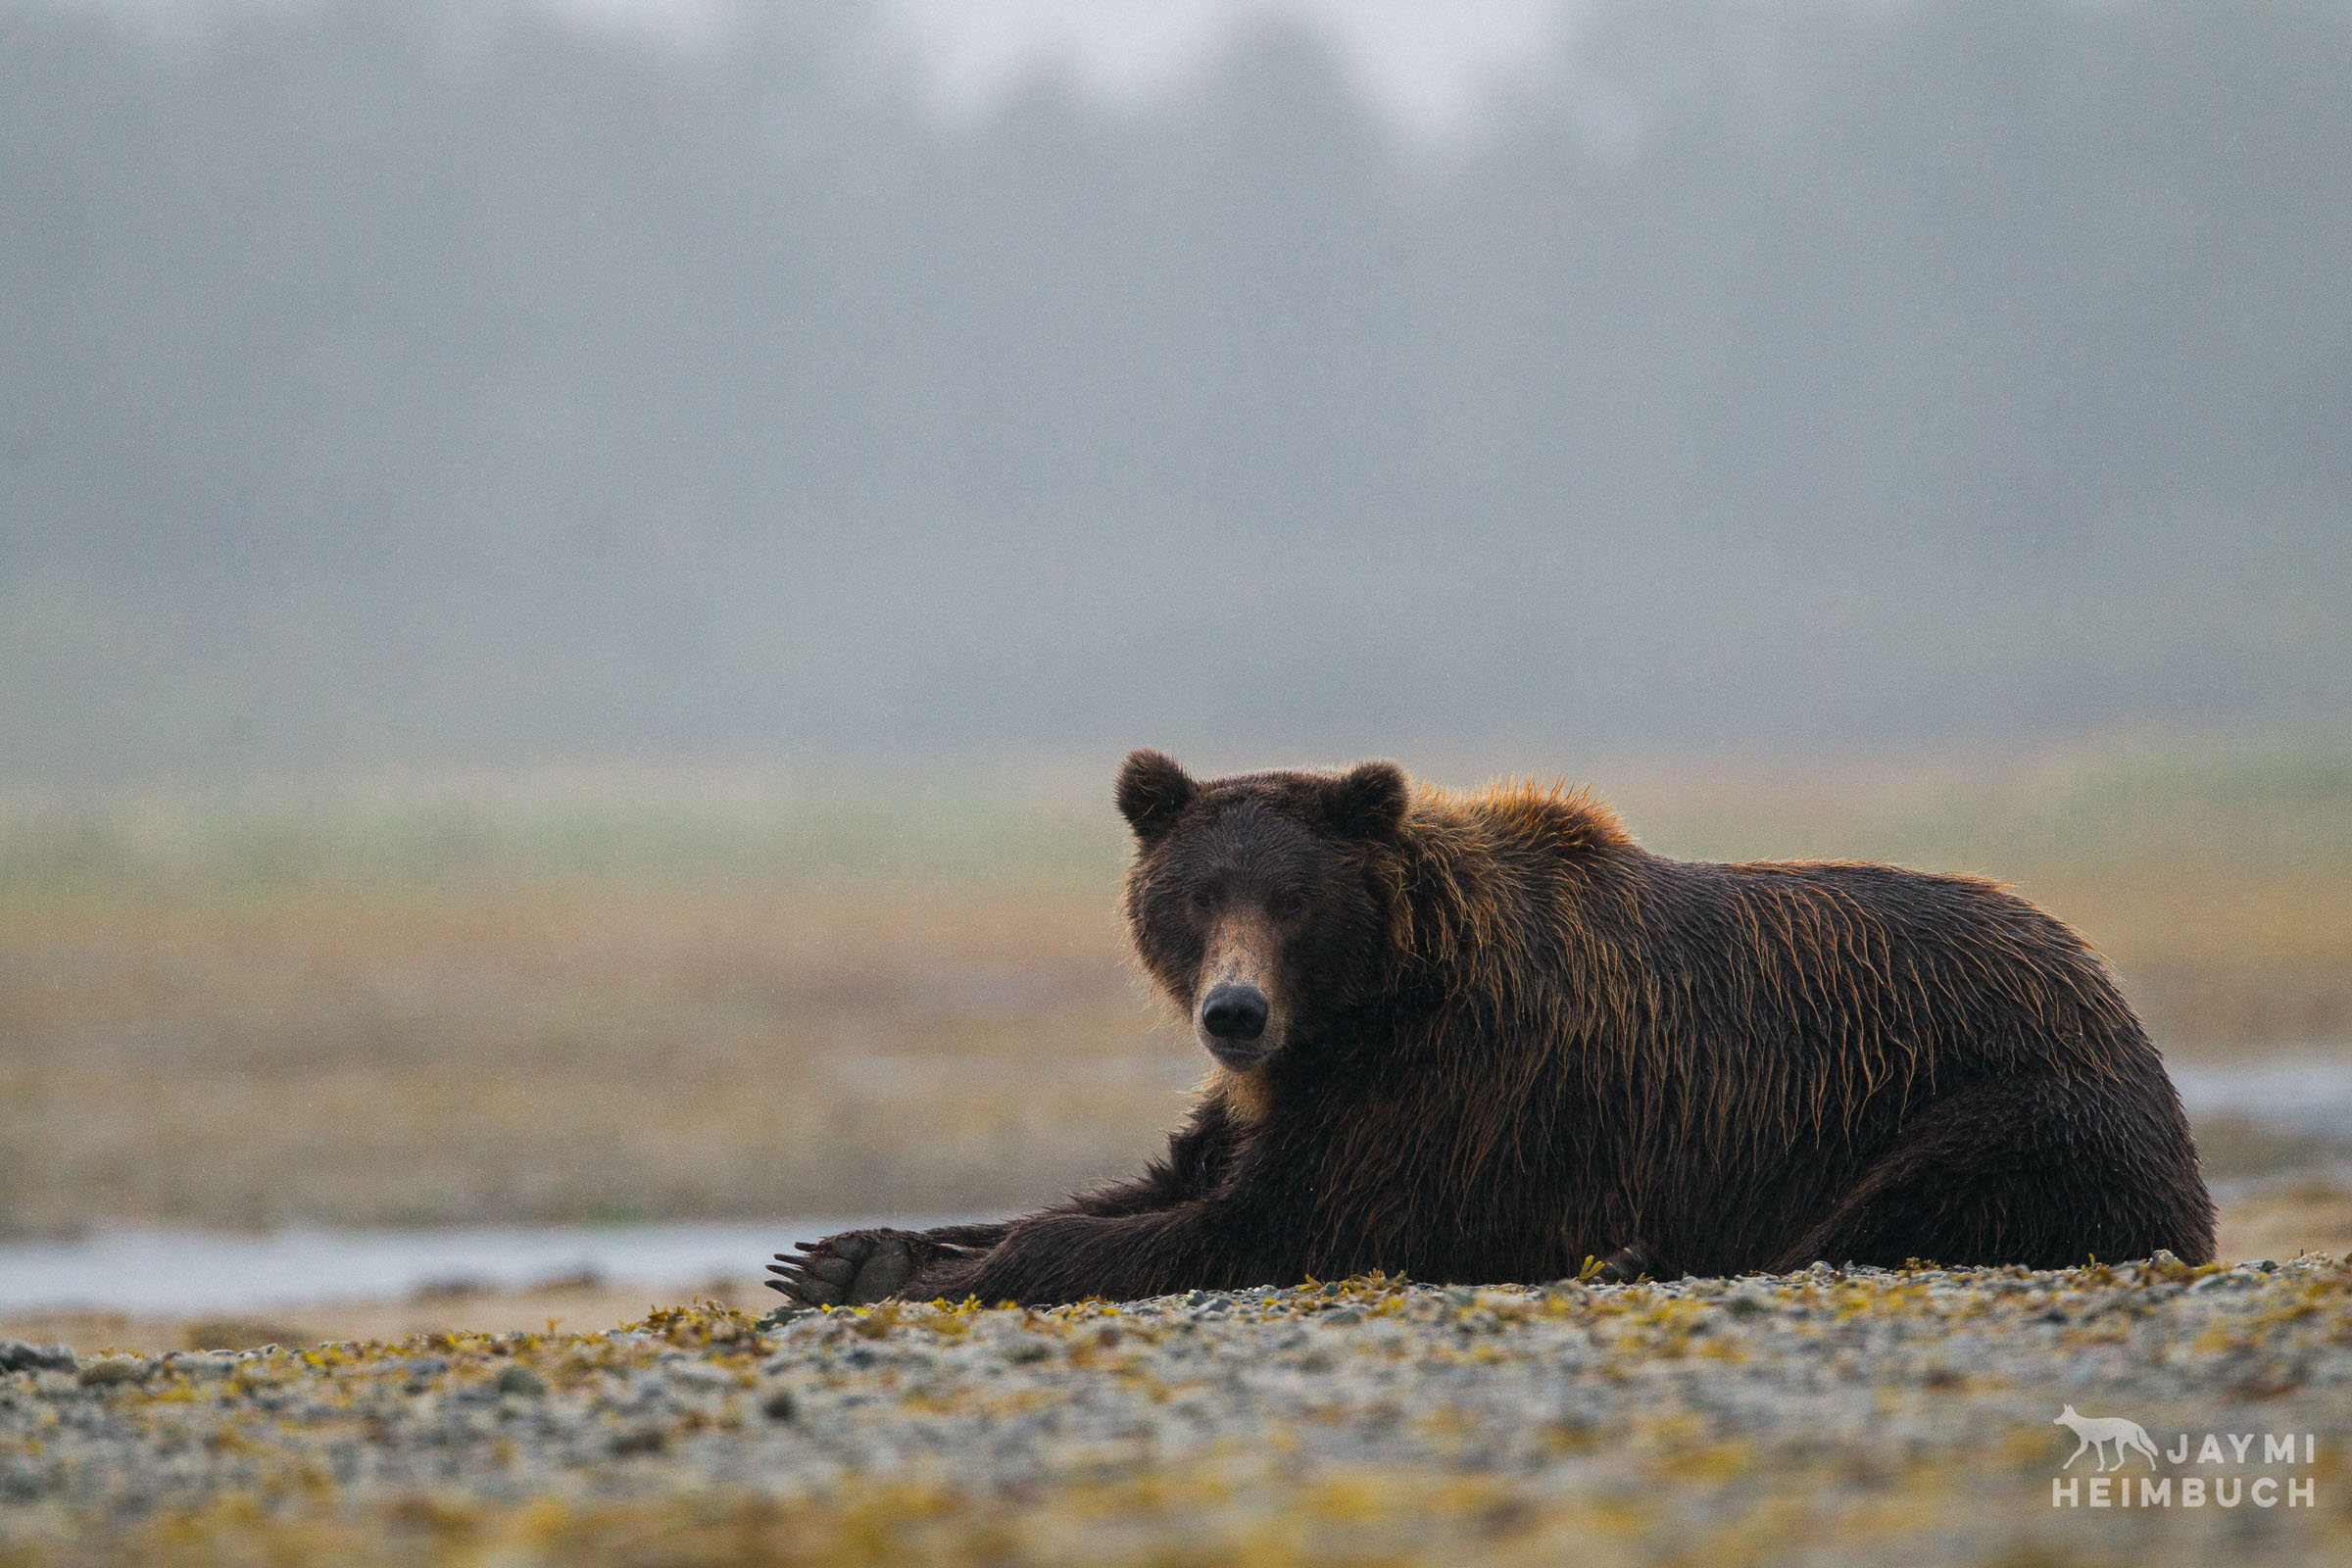 A coastal brown bear lays near a stream, looking directly at the camera.